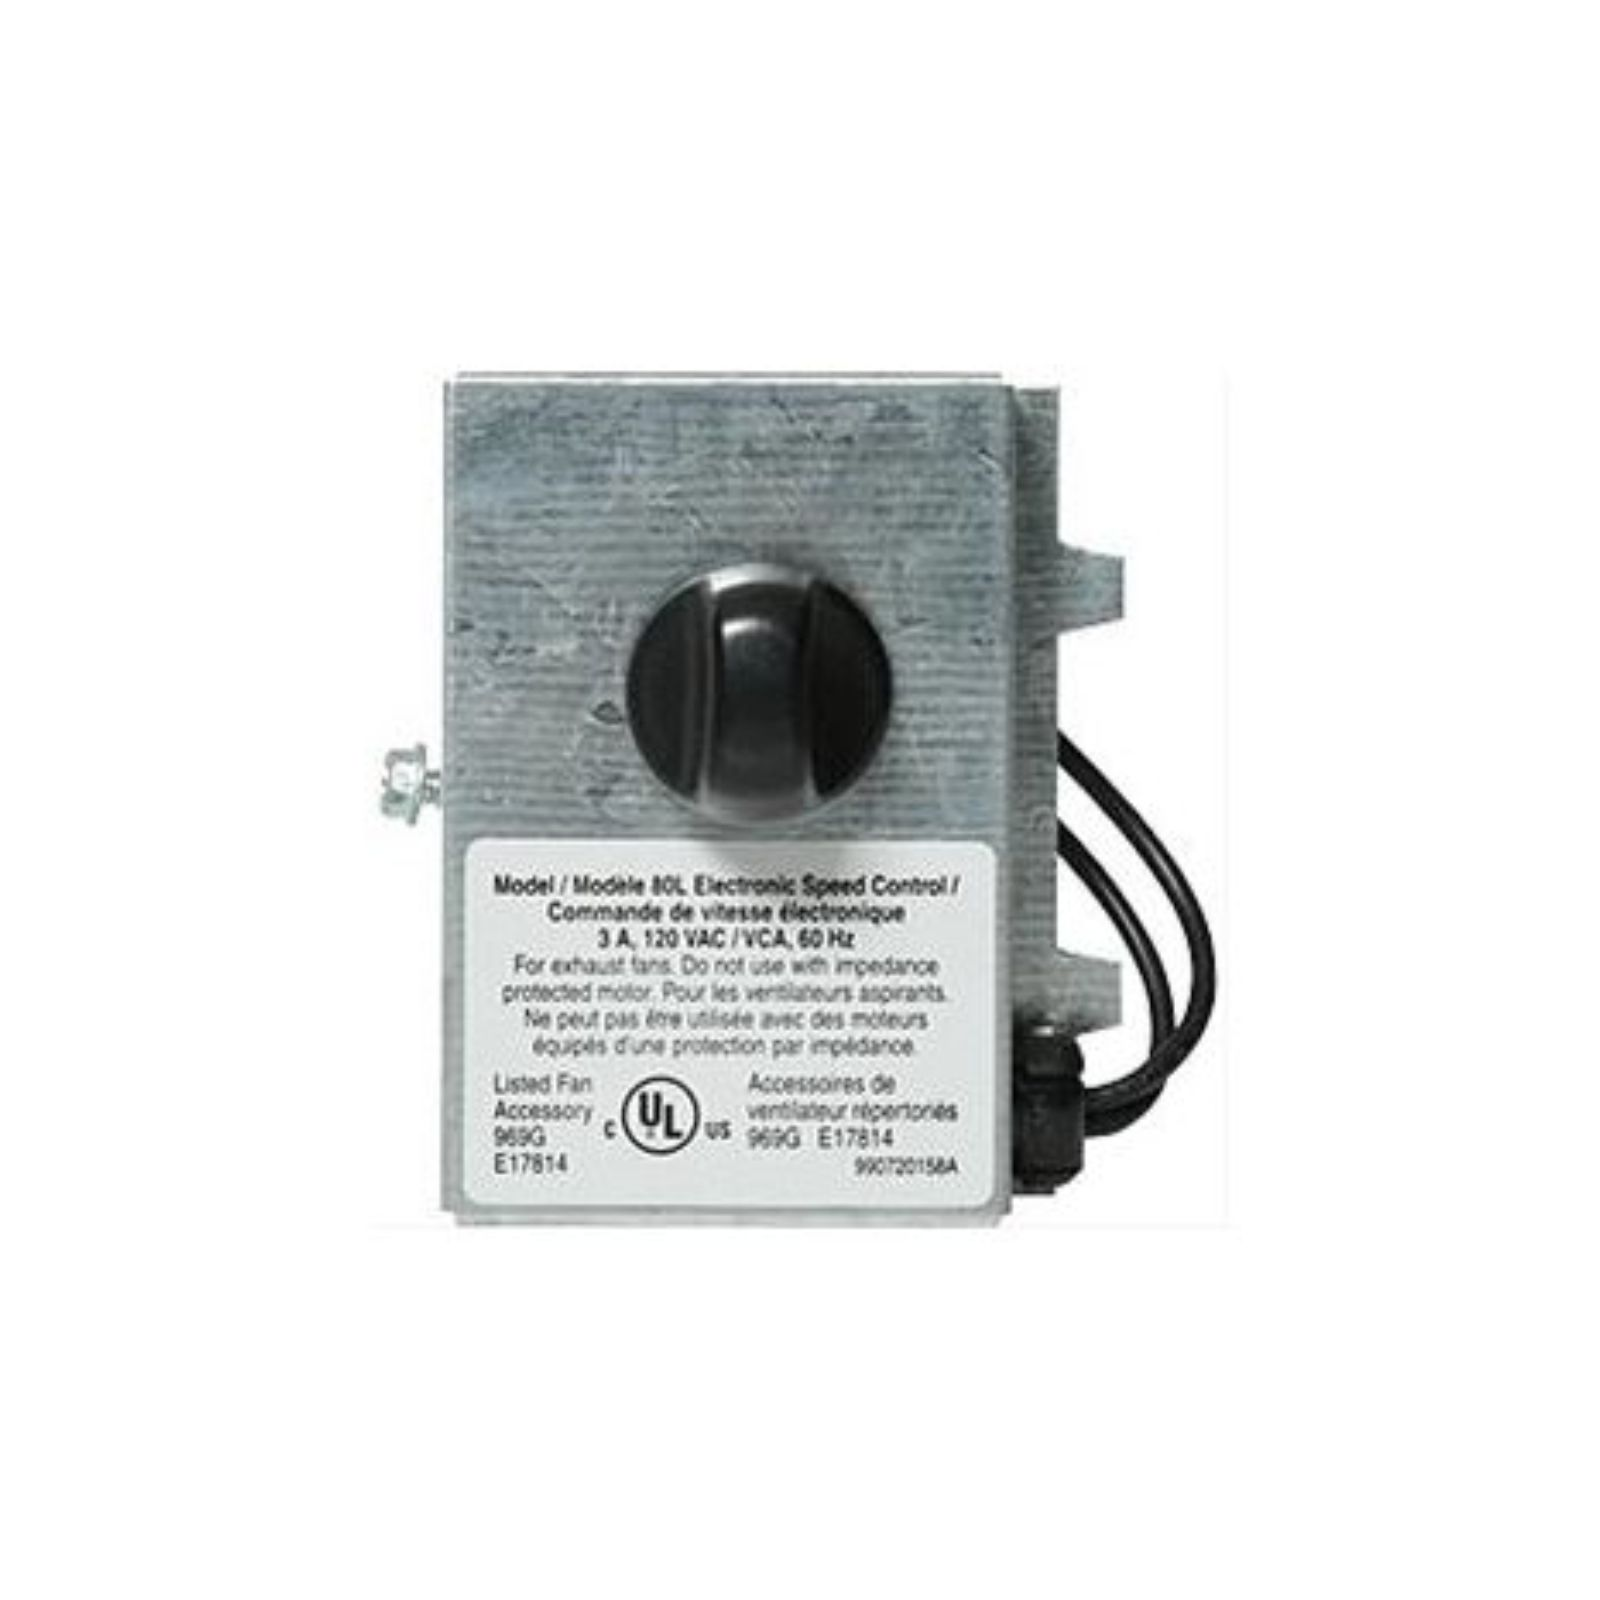 "Variable Speed Control a€"" 3.0 Amp, 120 Volts, 60 Hz (May Be Used With Select Models)"